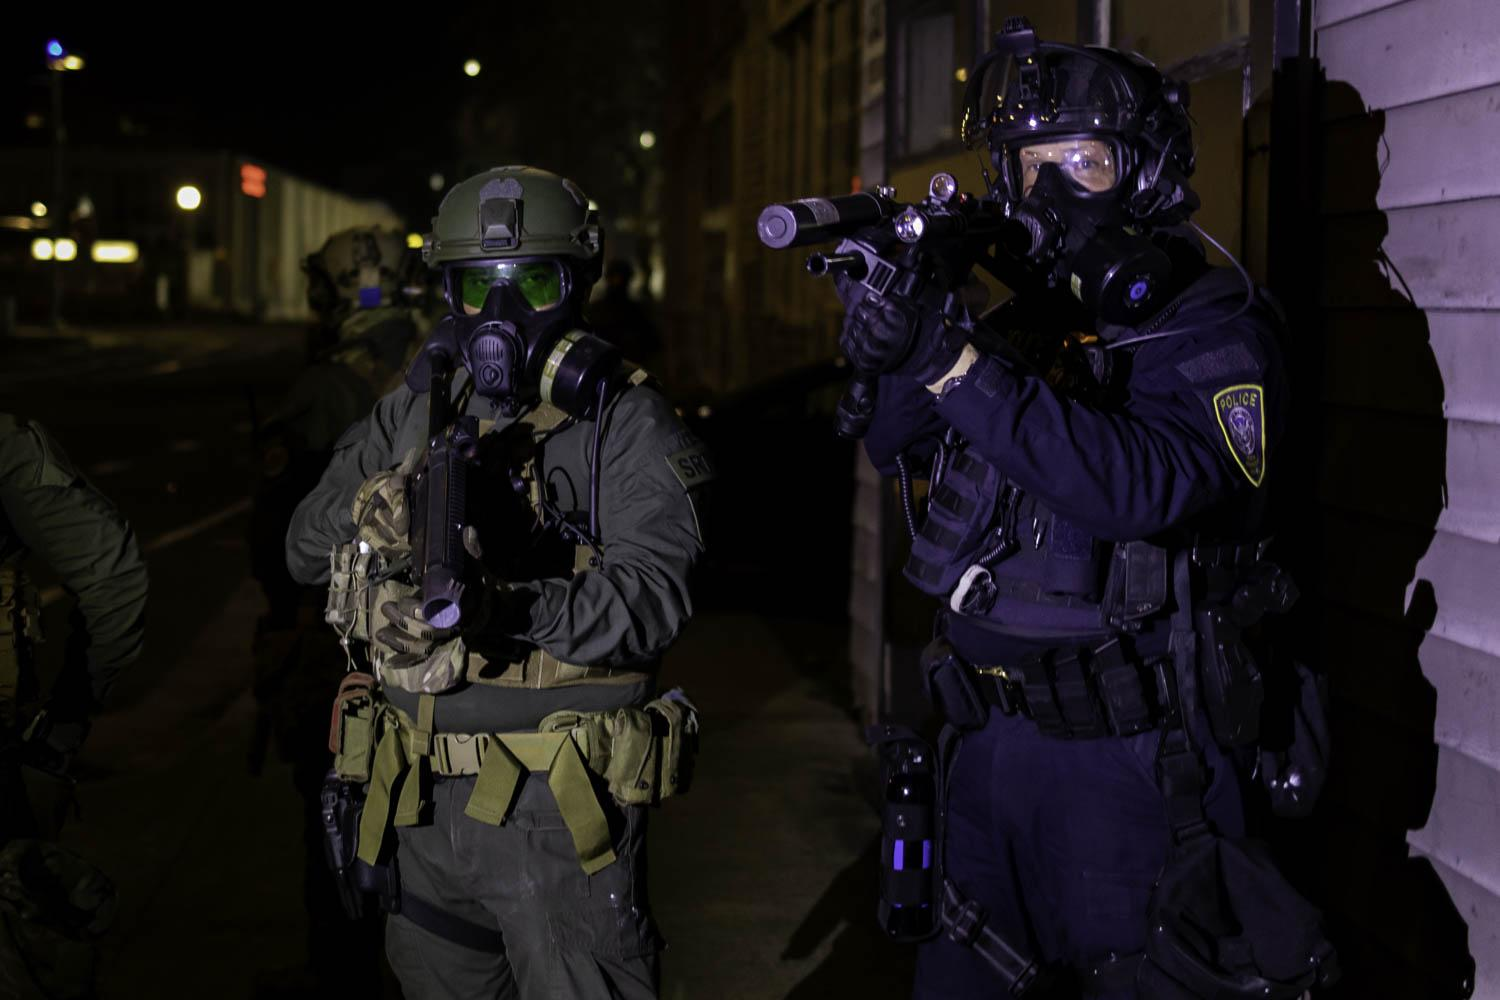 "Federal Department of Homeland Security officers point ""less-lethal"" munitions weapons at a group of protesters demonstrating near the Immigration and Customs Enforcement building on the night of January 20, 2021."